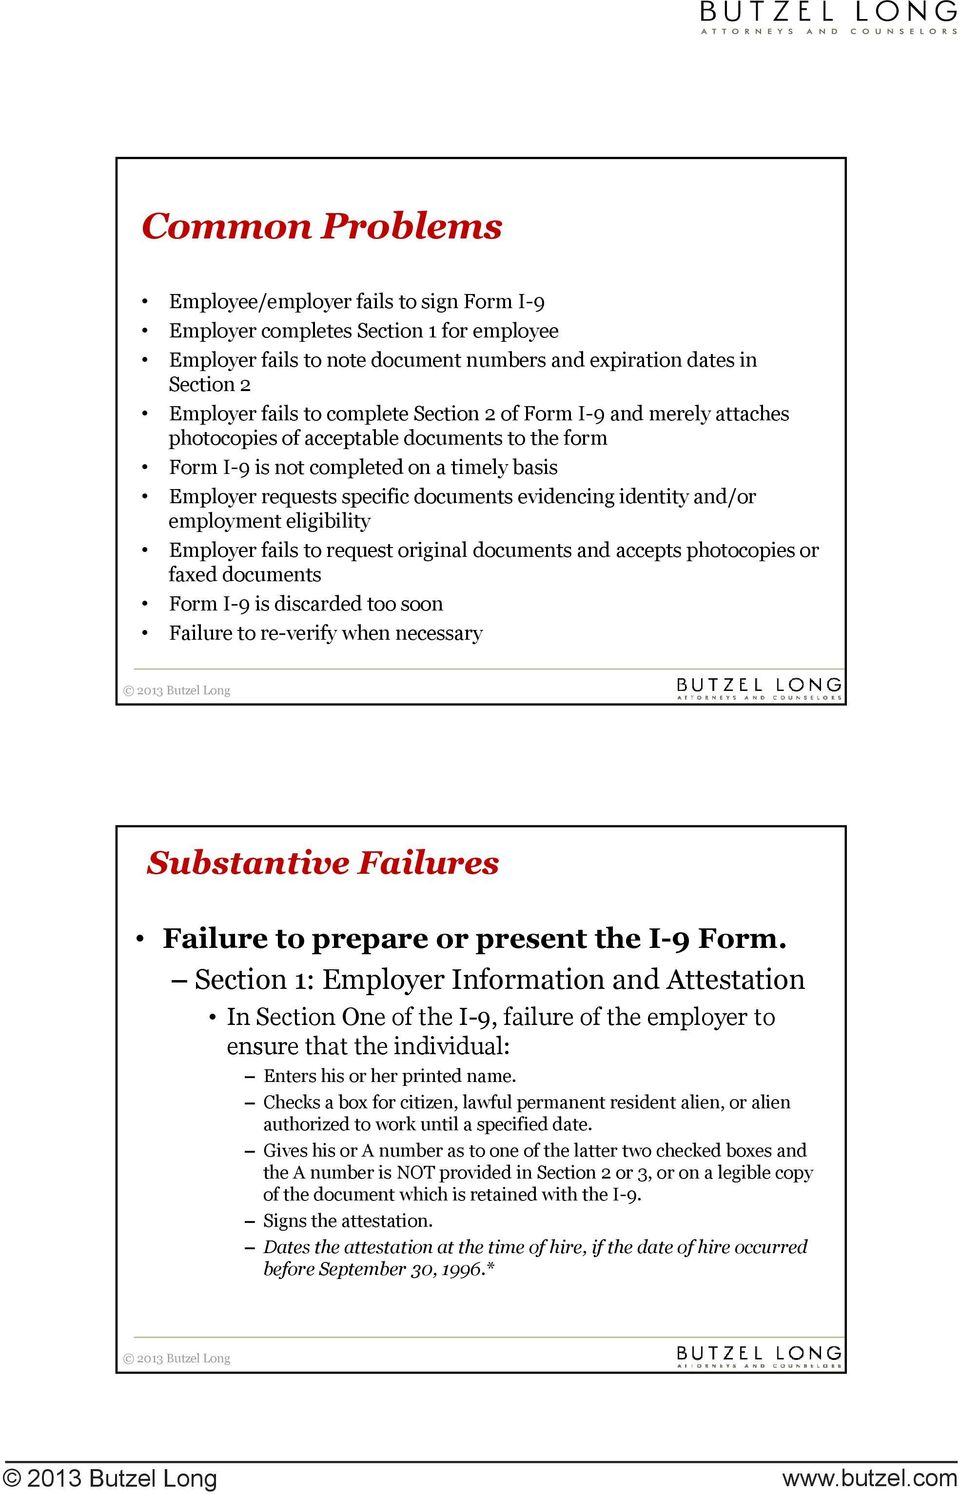 employment eligibility Employer fails to request original documents and accepts photocopies or faxed documents Form I-9 is discarded too soon Failure to re-verify when necessary Substantive Failures